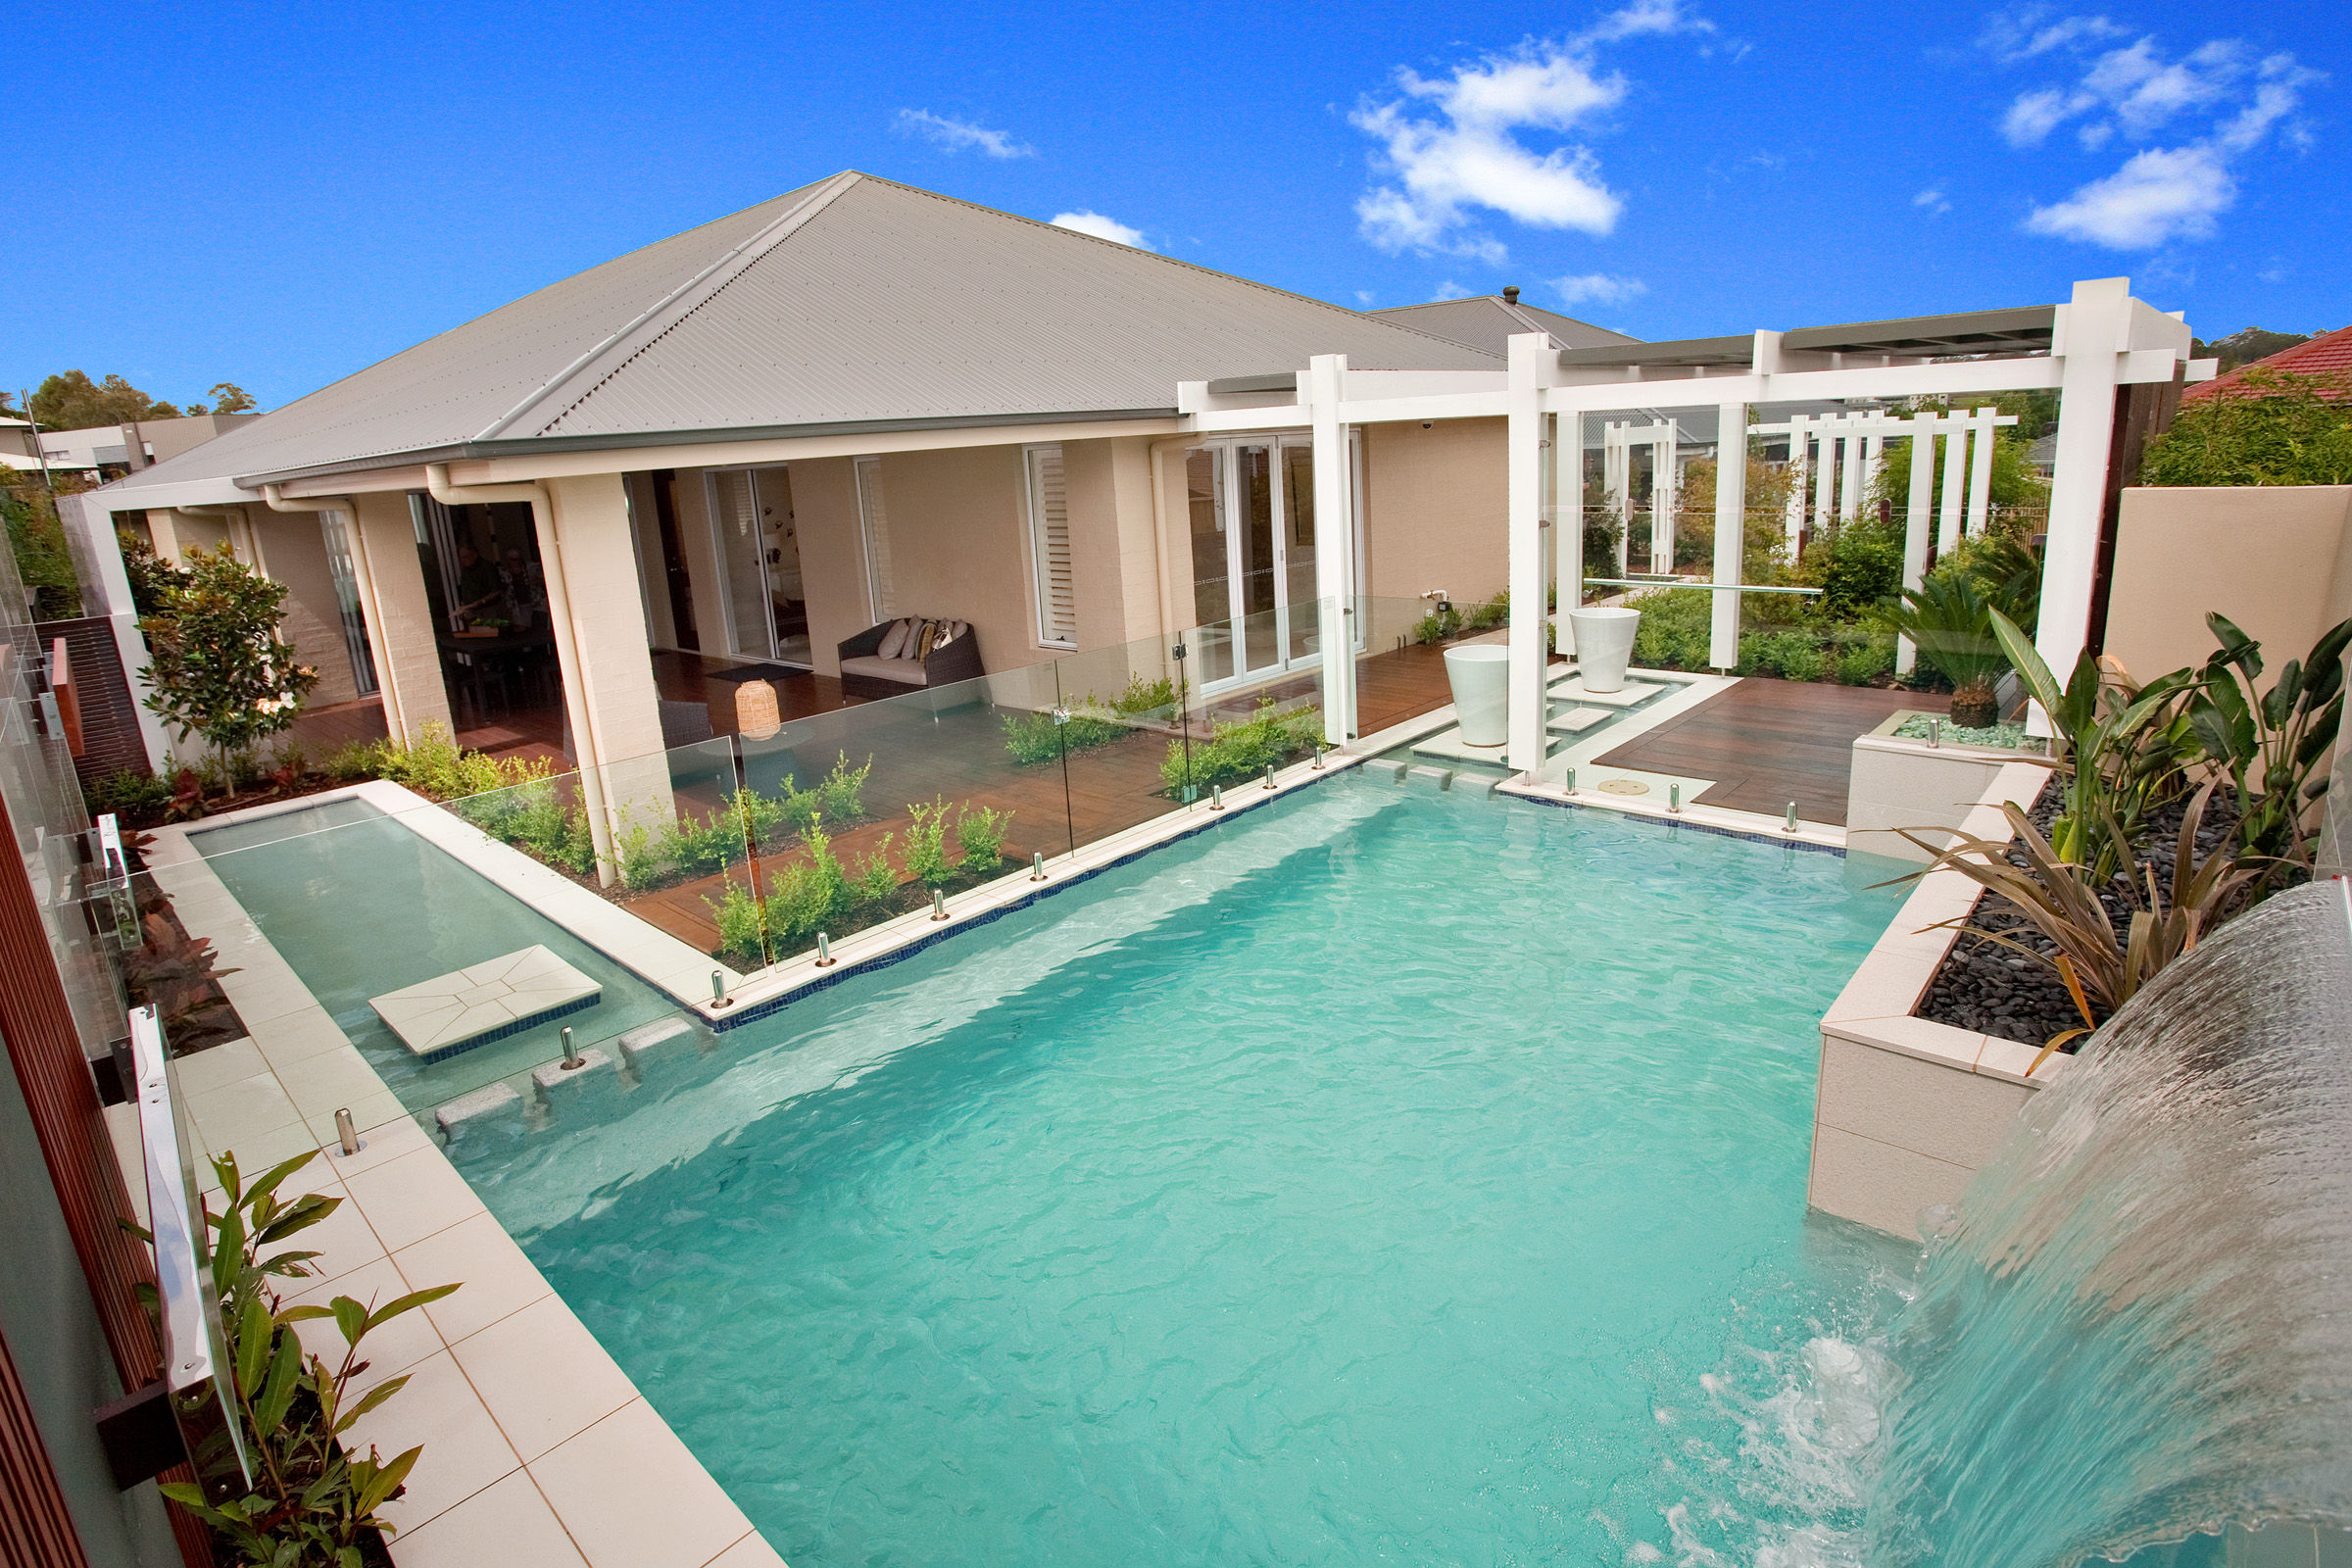 Concept pools australia sydney pool and outdoor design for Pool design sydney